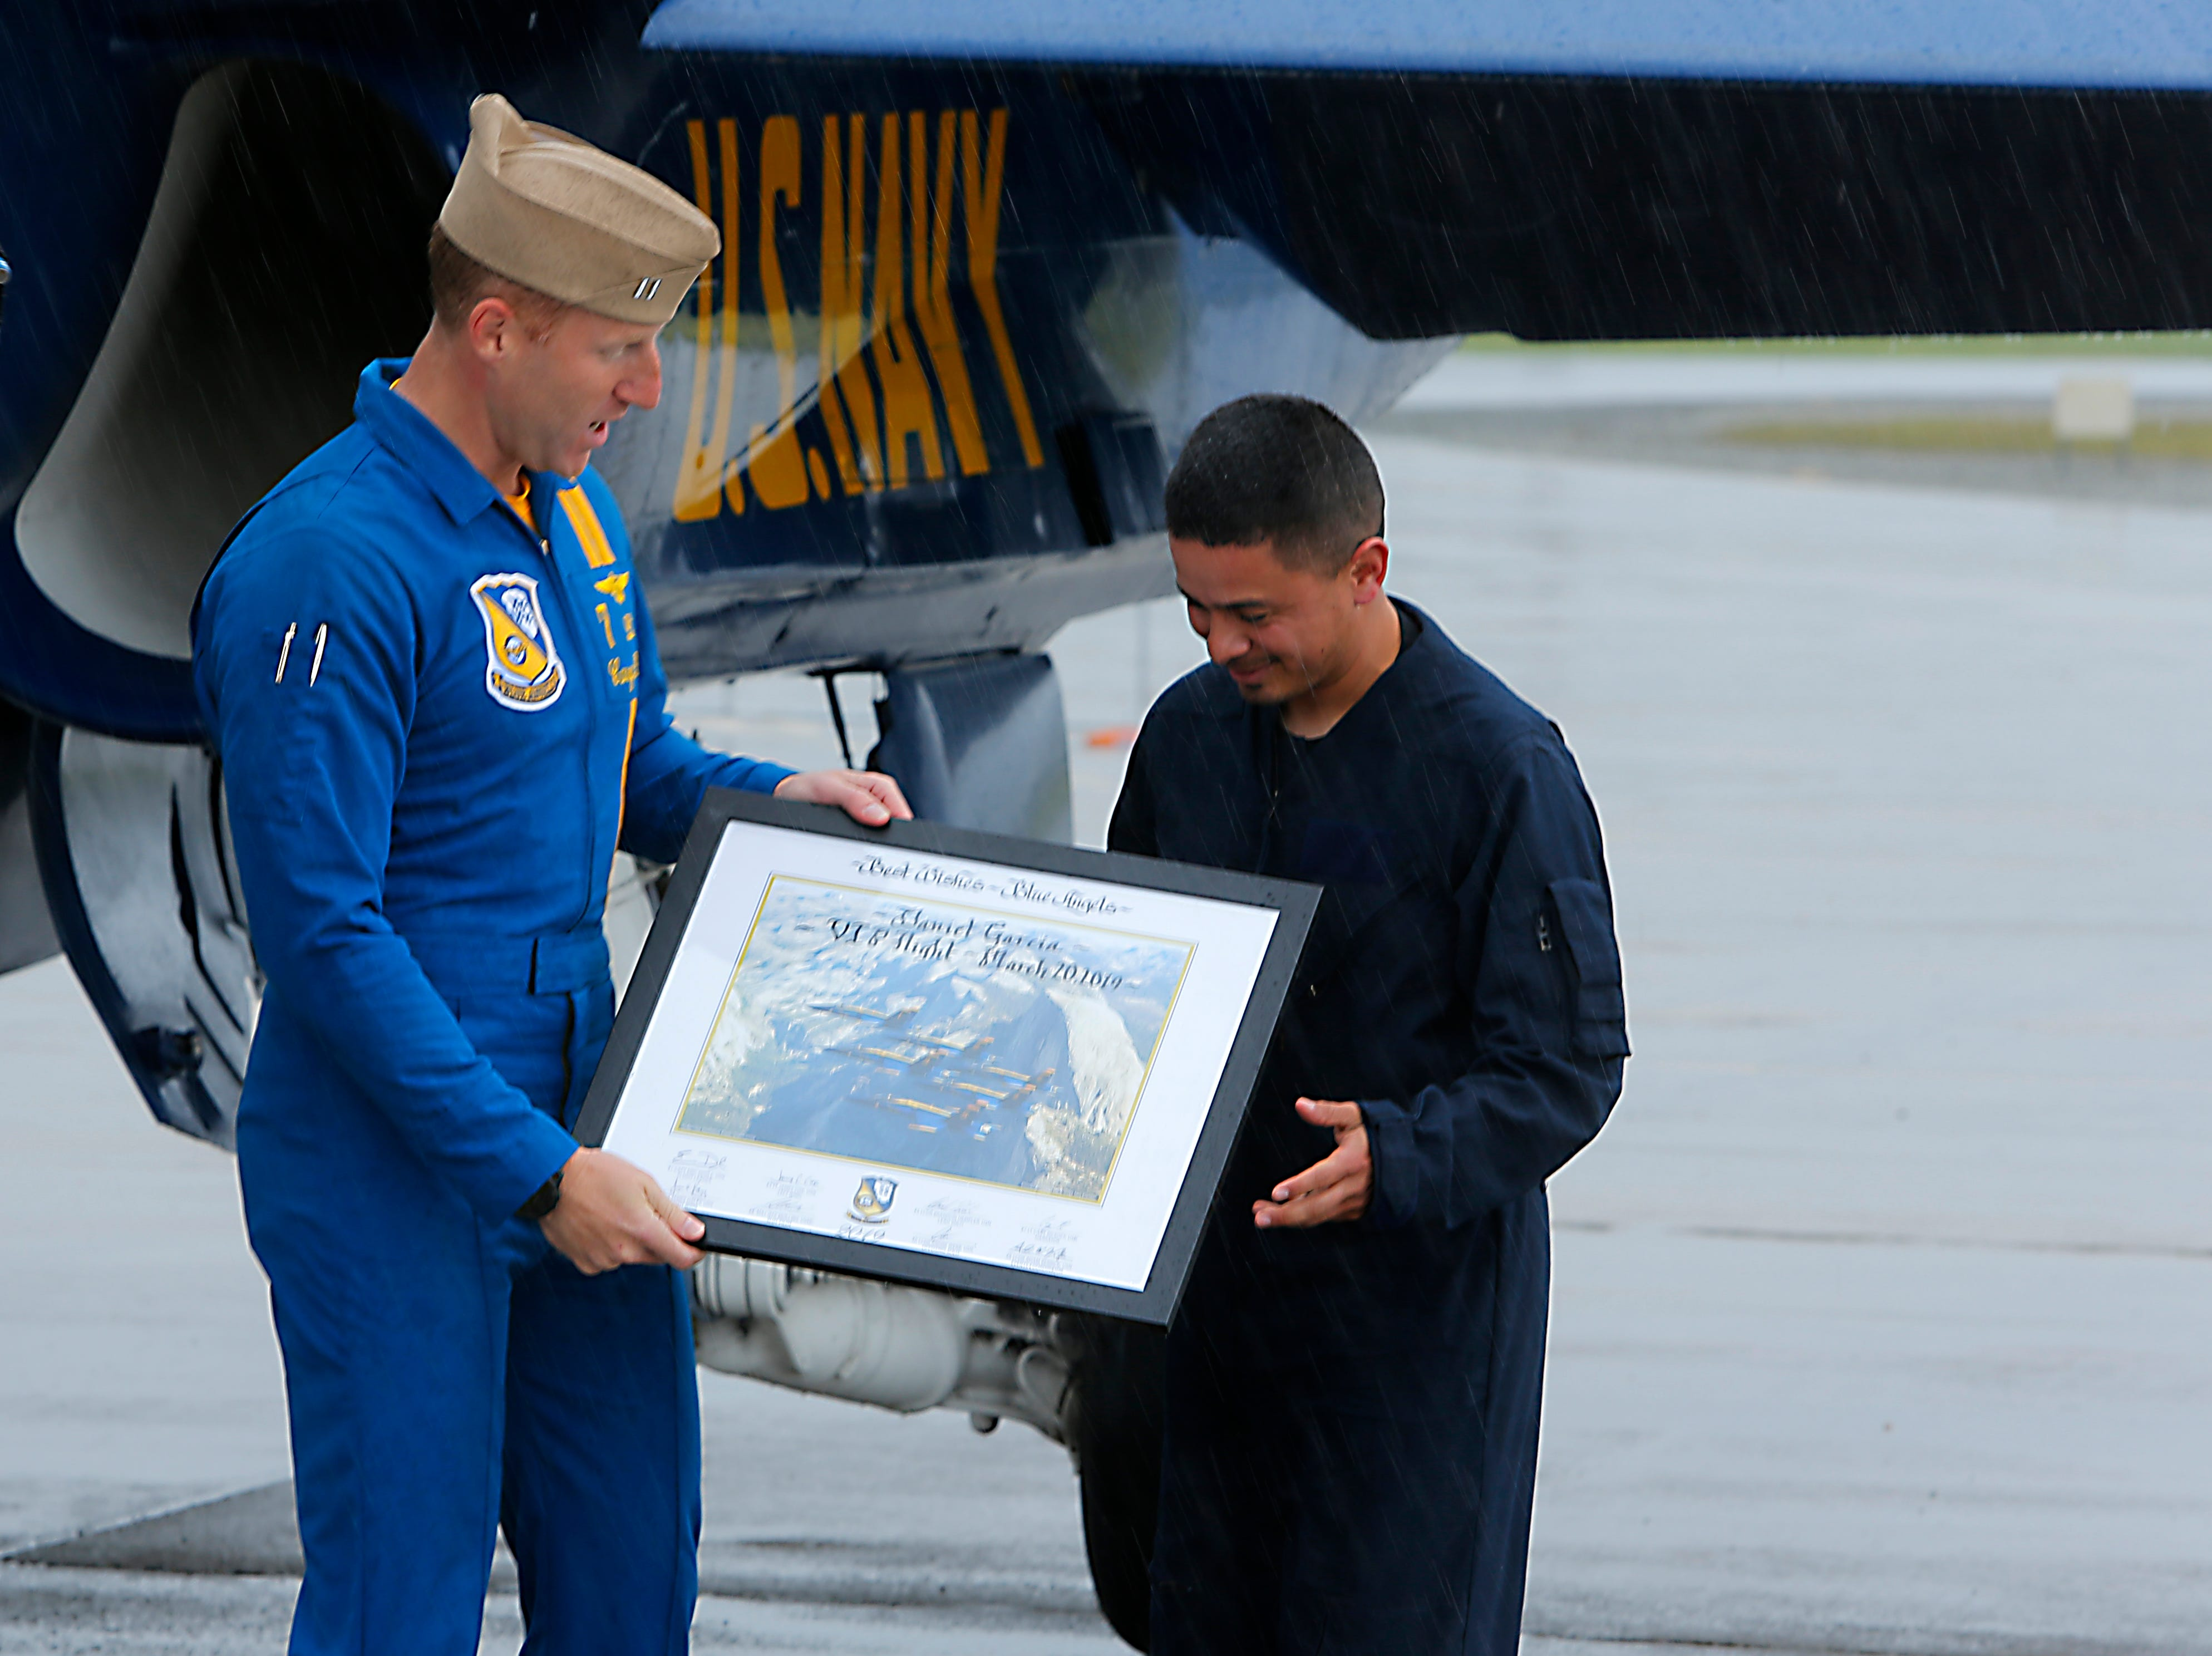 Lt. Cary Rickoff gives Salinas police officer Daniel Garcia a personalized and autographed photo of the Blue Angels performing.